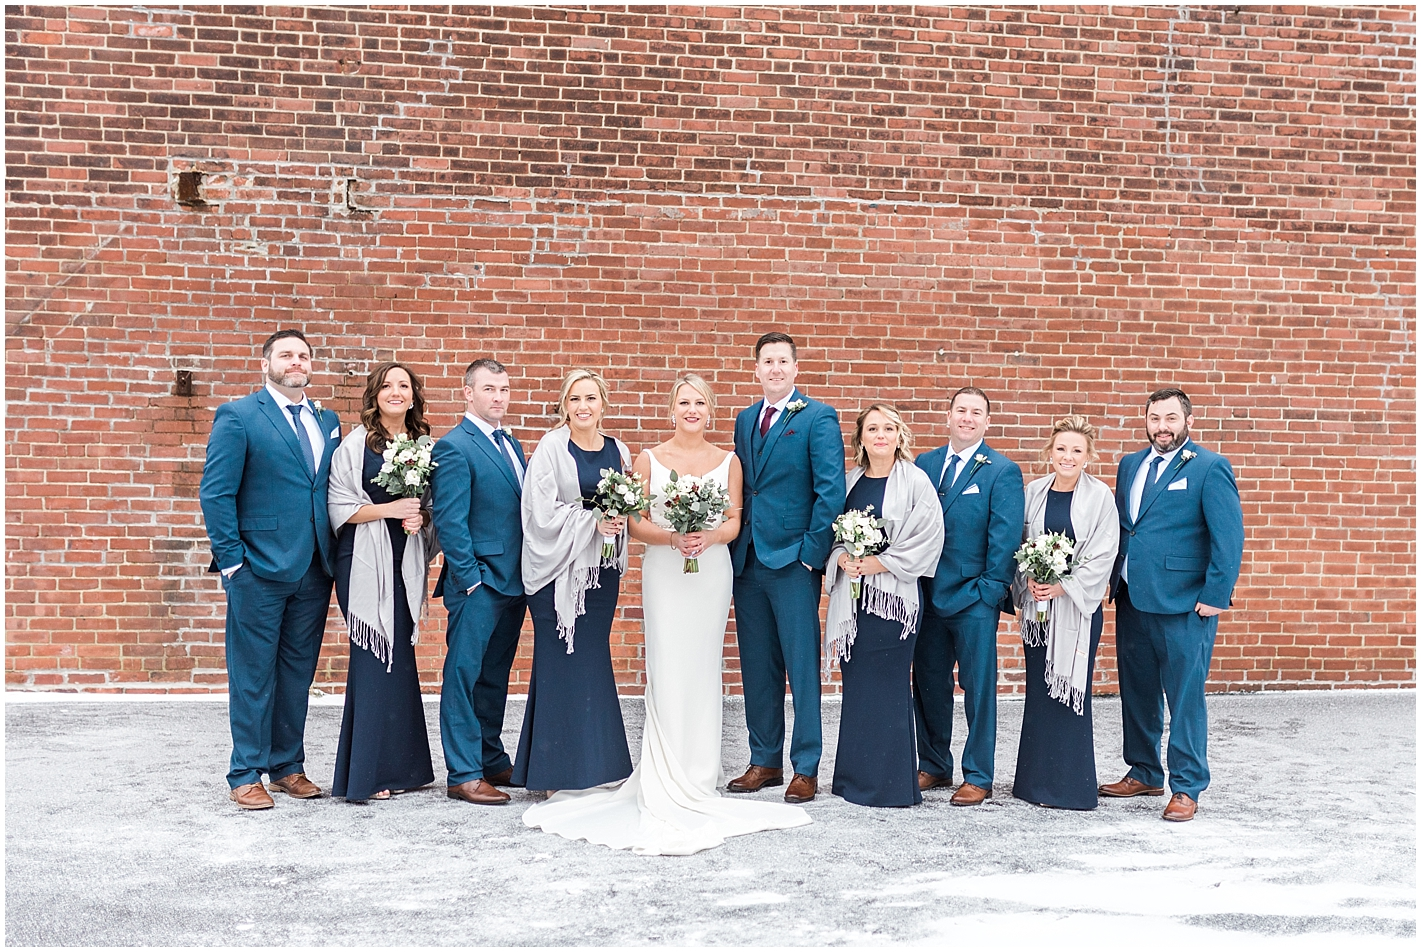 Navy Blue Wedding Party Attire Photo by Alyssa Parker Photography